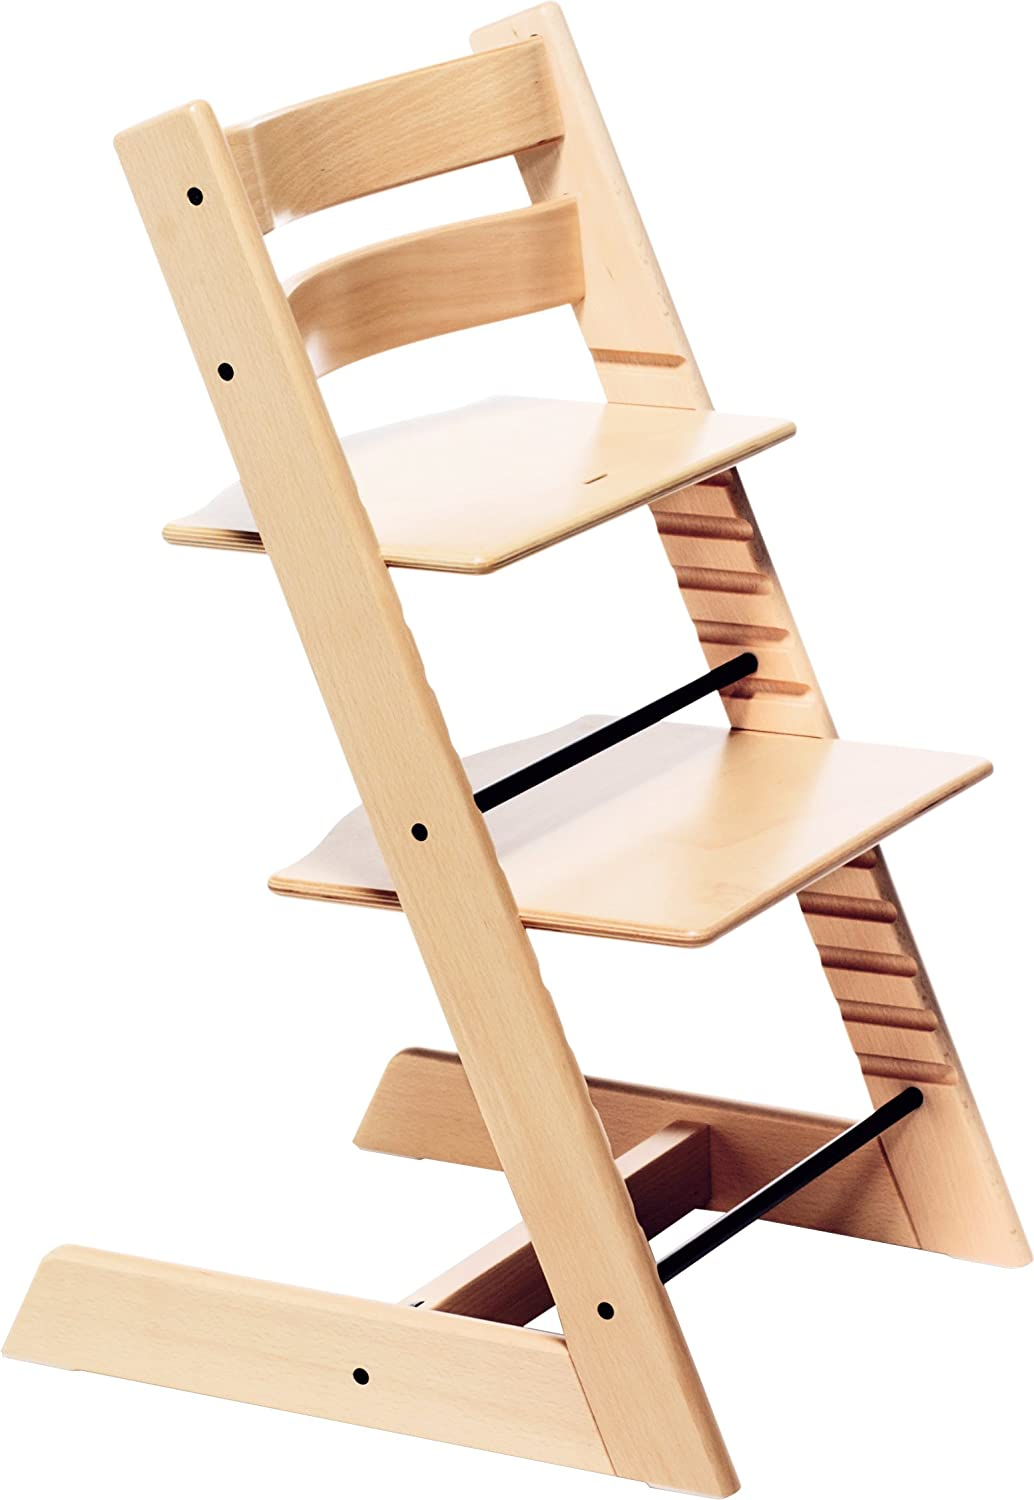 stokke high chair stokke steps highchair modern wooden high chairs stokke high chair stokke. Black Bedroom Furniture Sets. Home Design Ideas